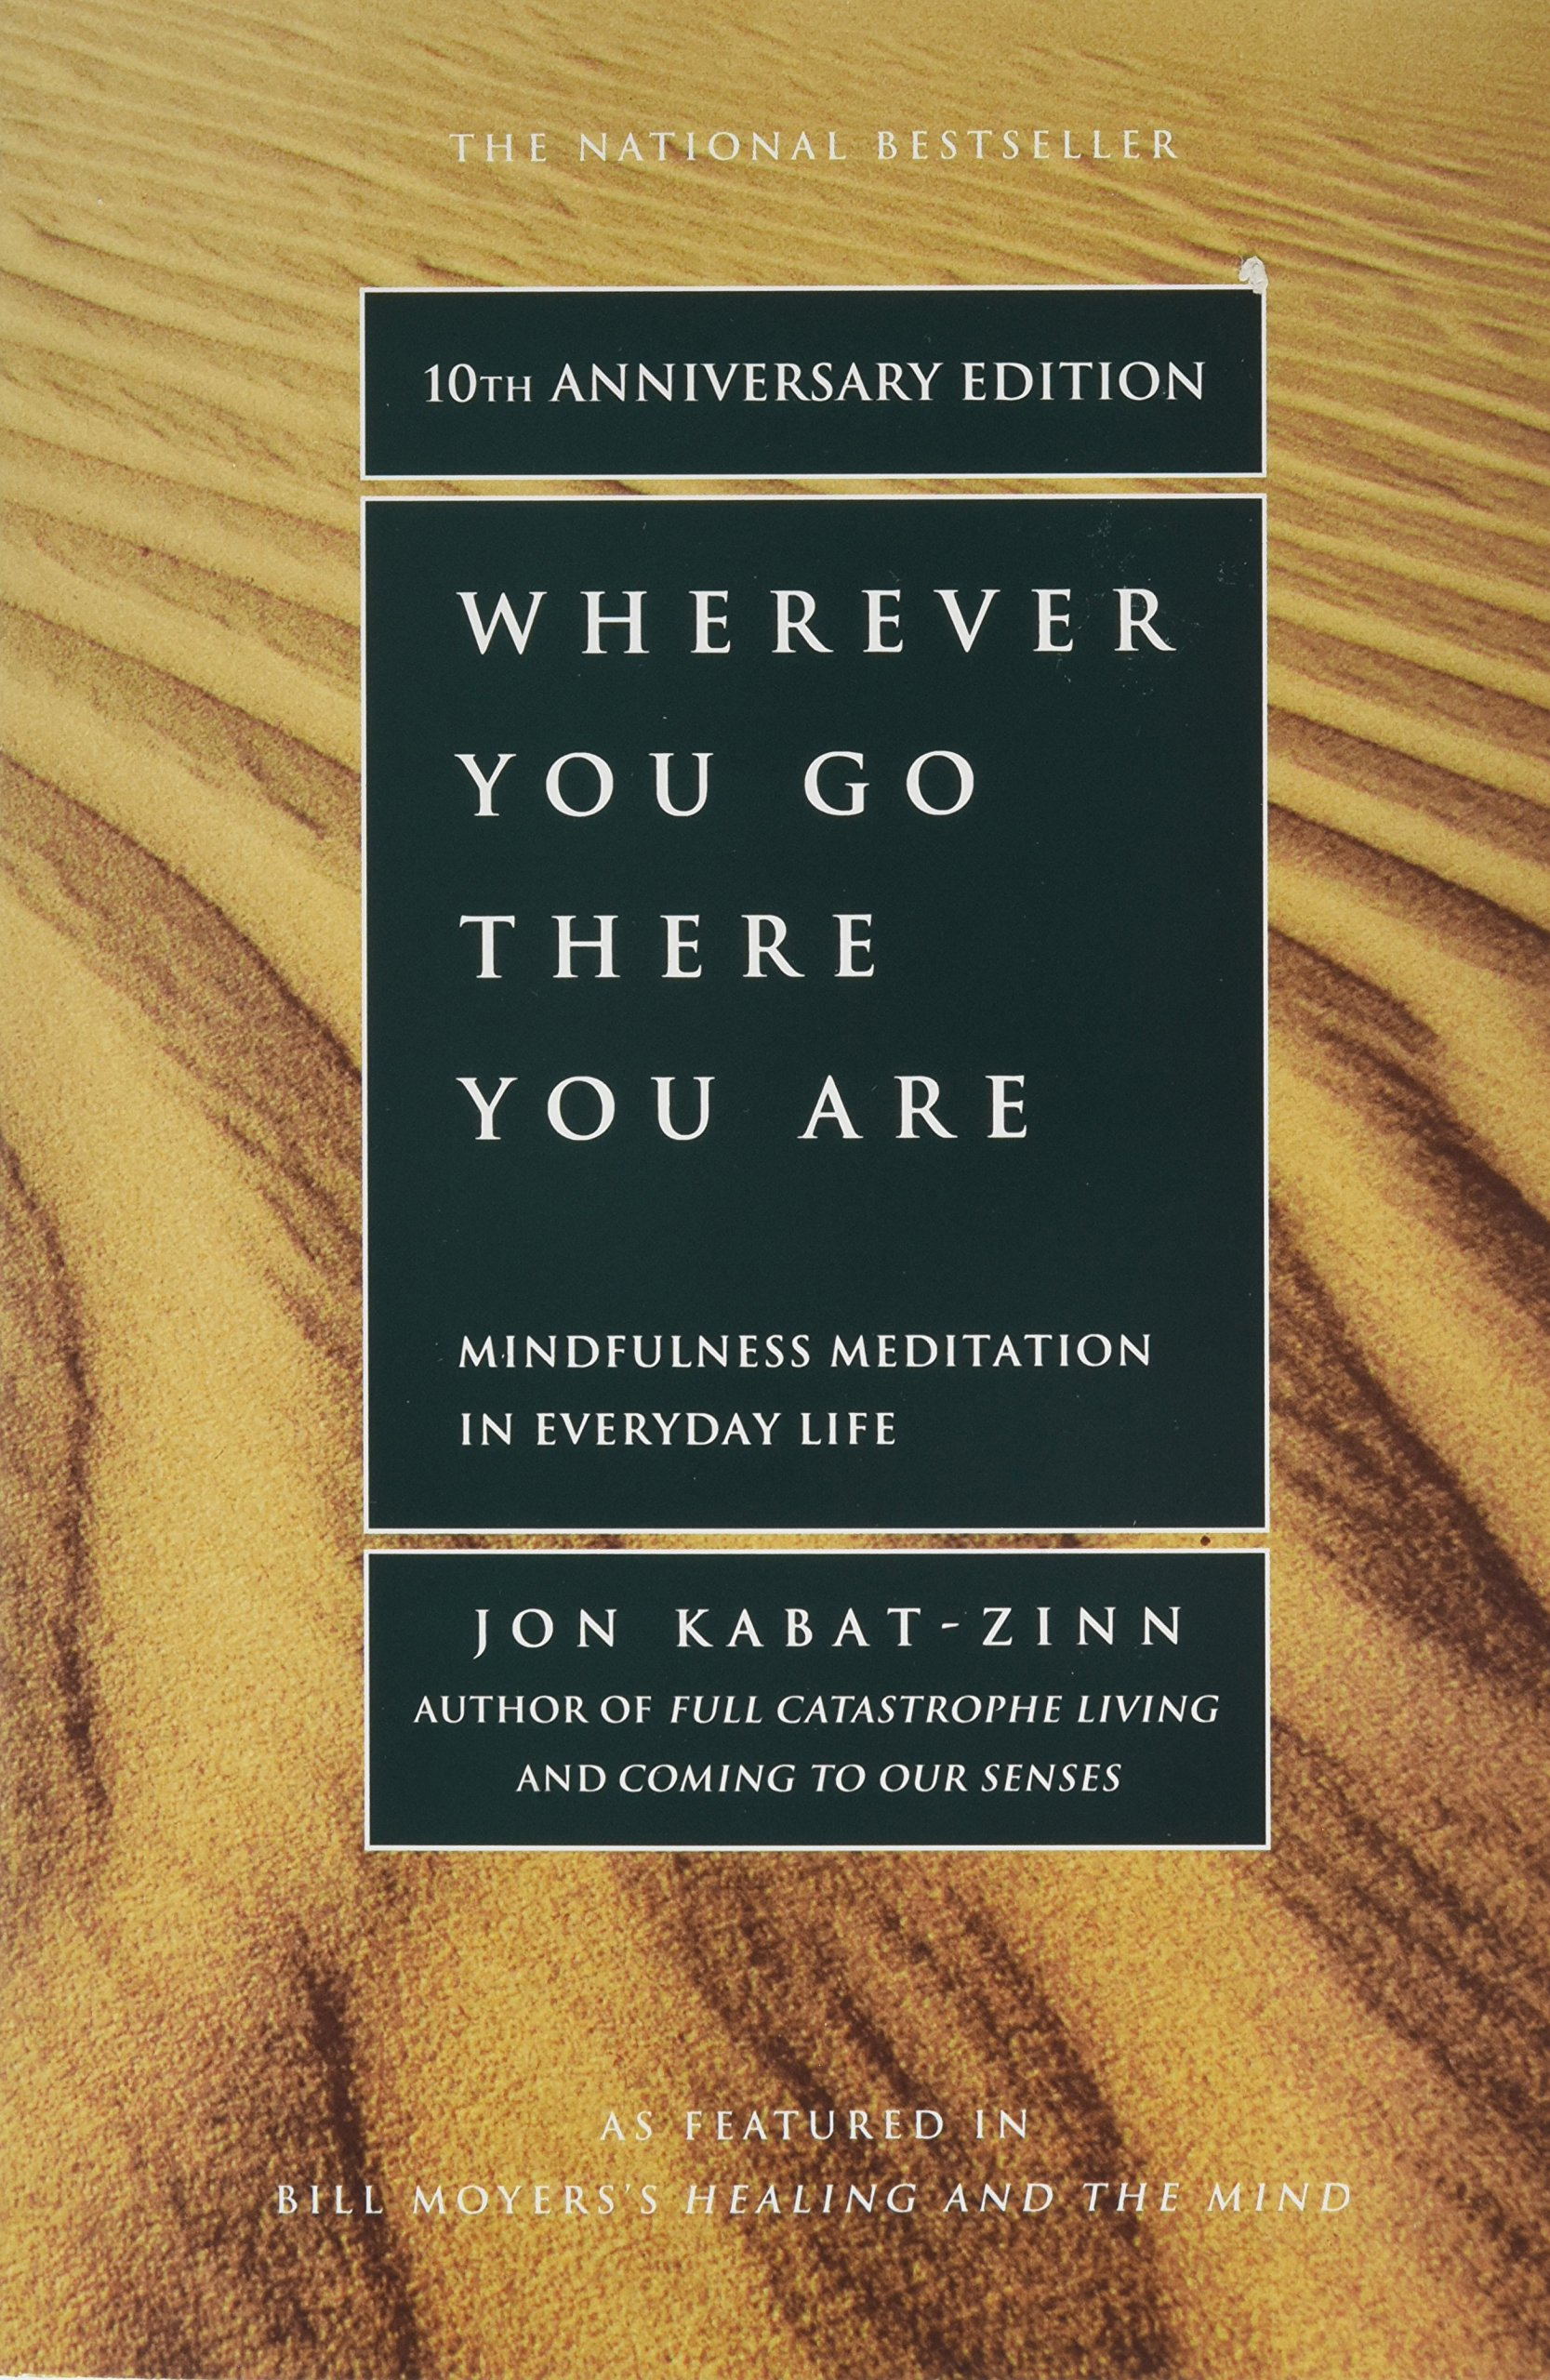 wherever you go, there you are - By Jon Kabat-ZinnWhen Wherever You Go, There You Are was first published in 1994, no one could have predicted that the book would launch itself onto bestseller lists nationwide and sell over 750,000 copies to date. Ten years later, the book continues to change lives. In honor of the book's 10th anniversary, Hyperion is proud to be releasing the book with a new afterword by the author, and to share this wonderful book with an even larger audience.